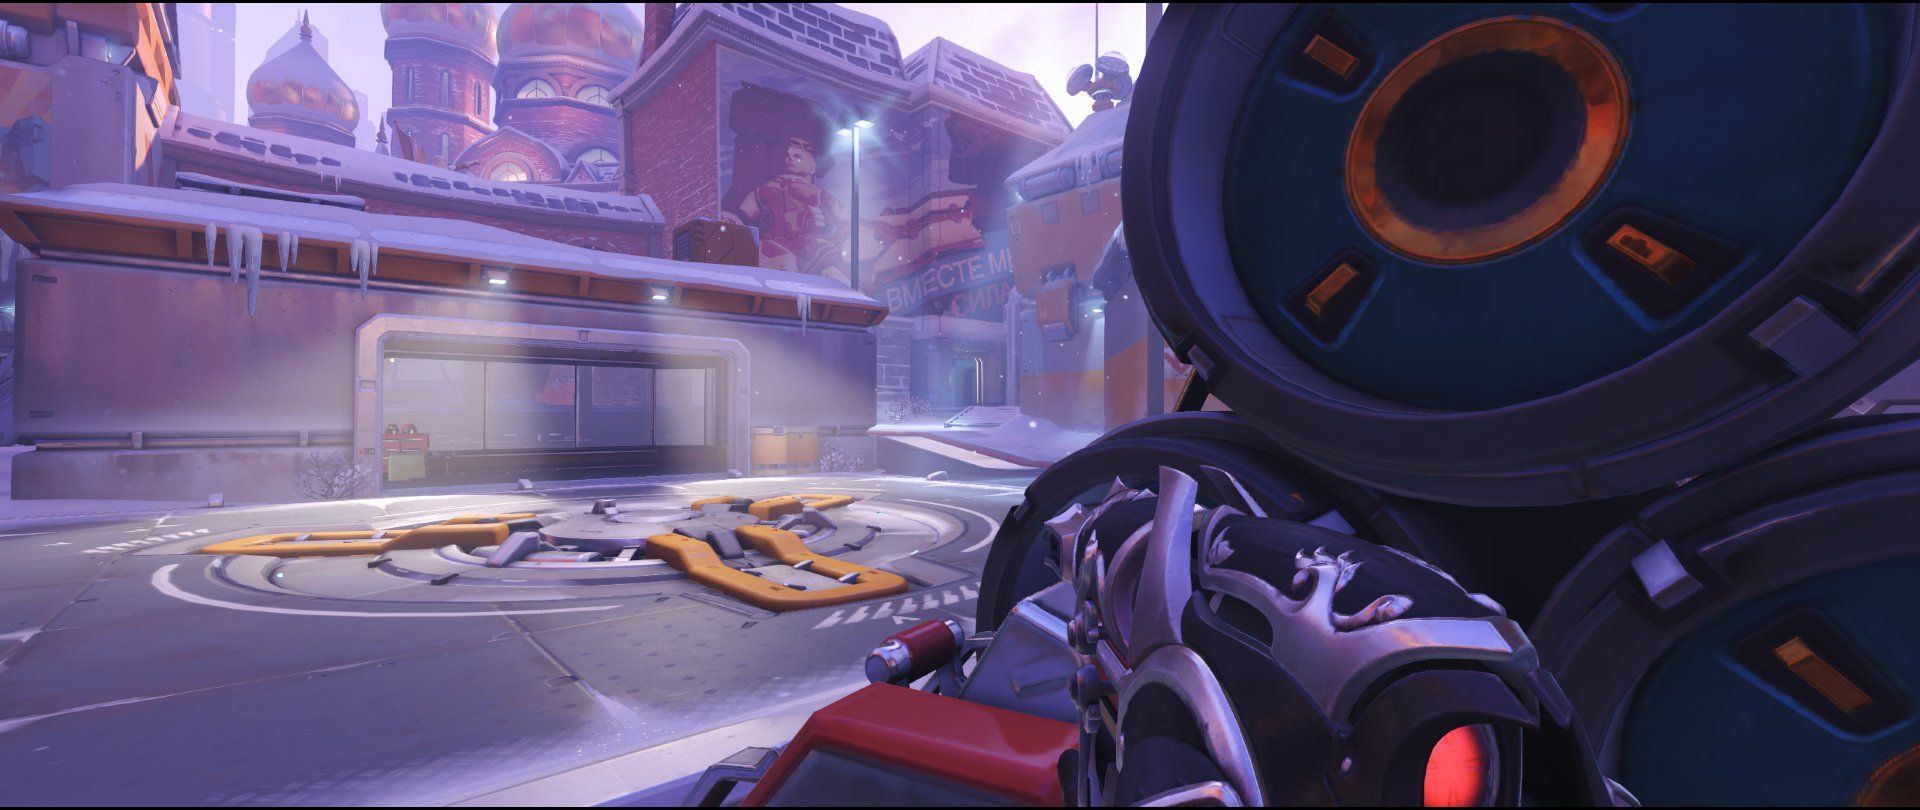 Box on point defense sniping spot Widowmaker Volskaya Industries Overwatch.jpg